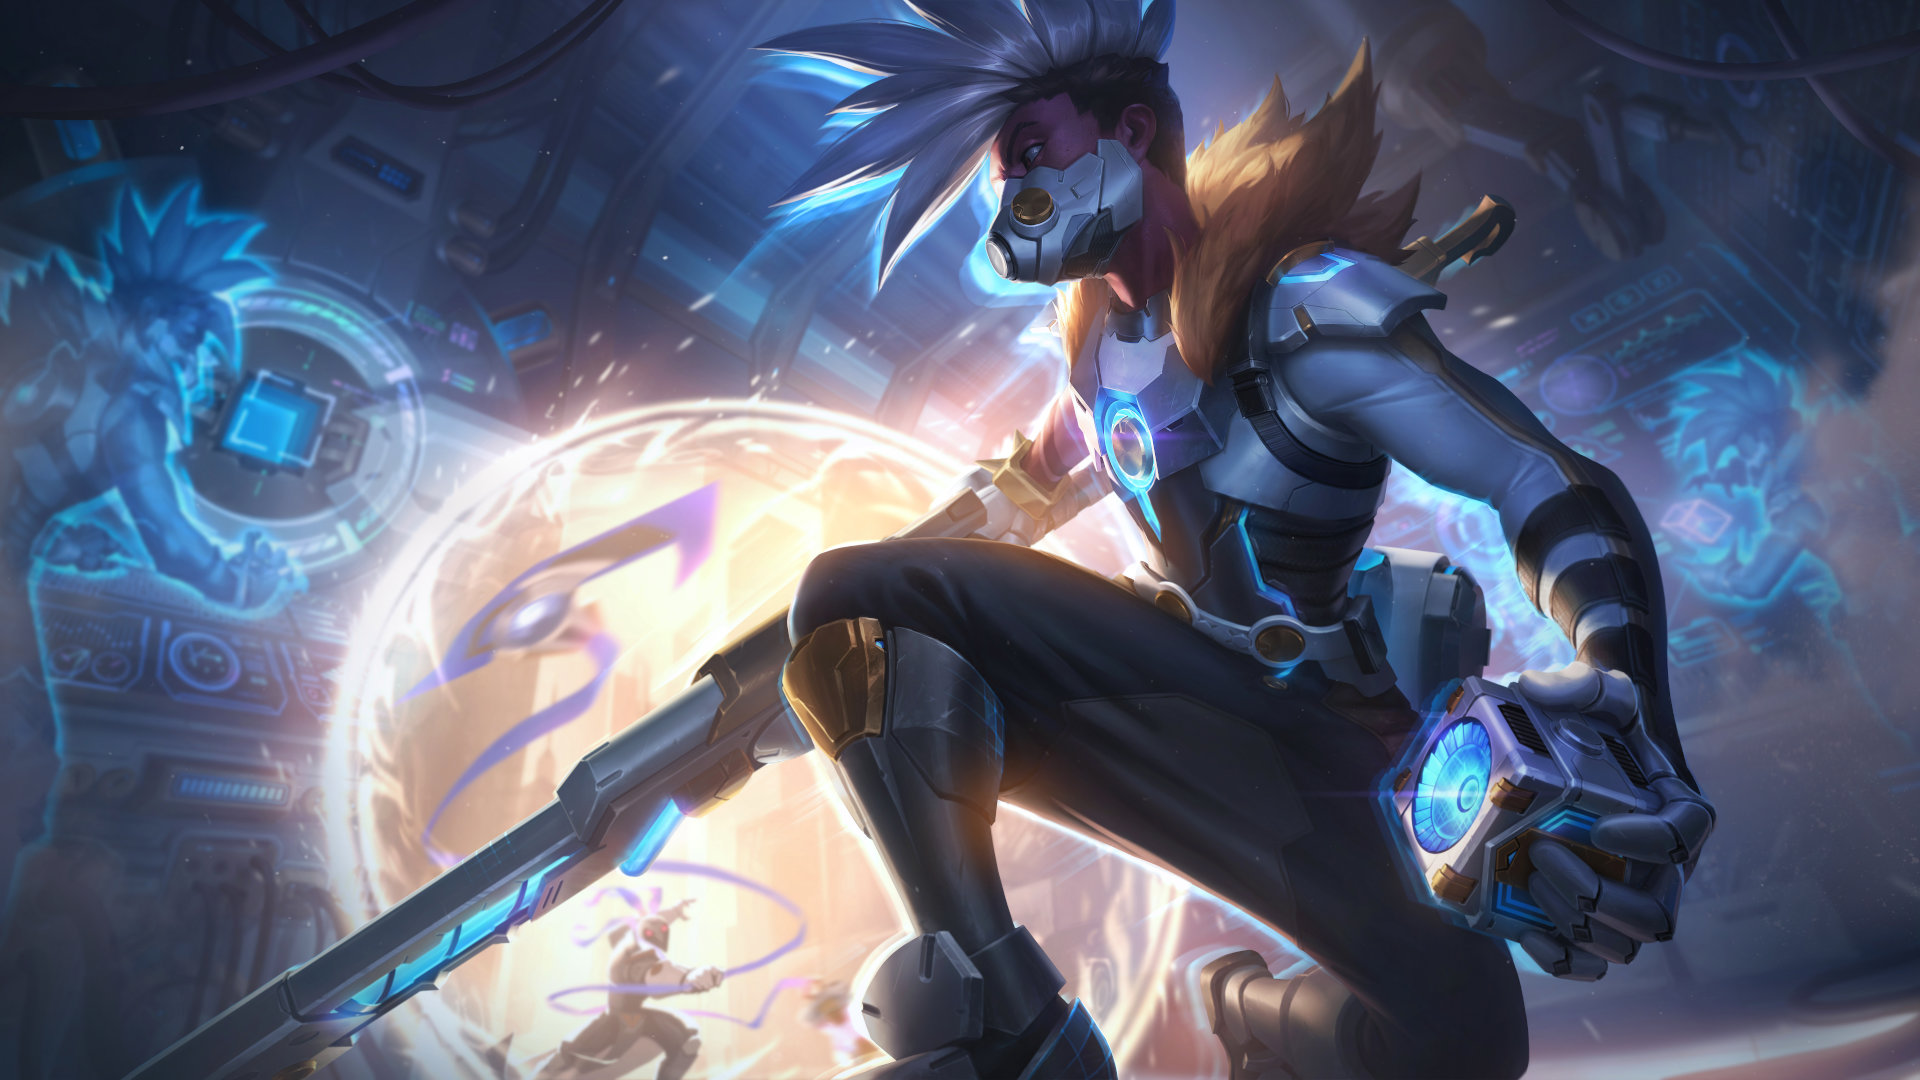 Pick URF returns to League of Legends ...